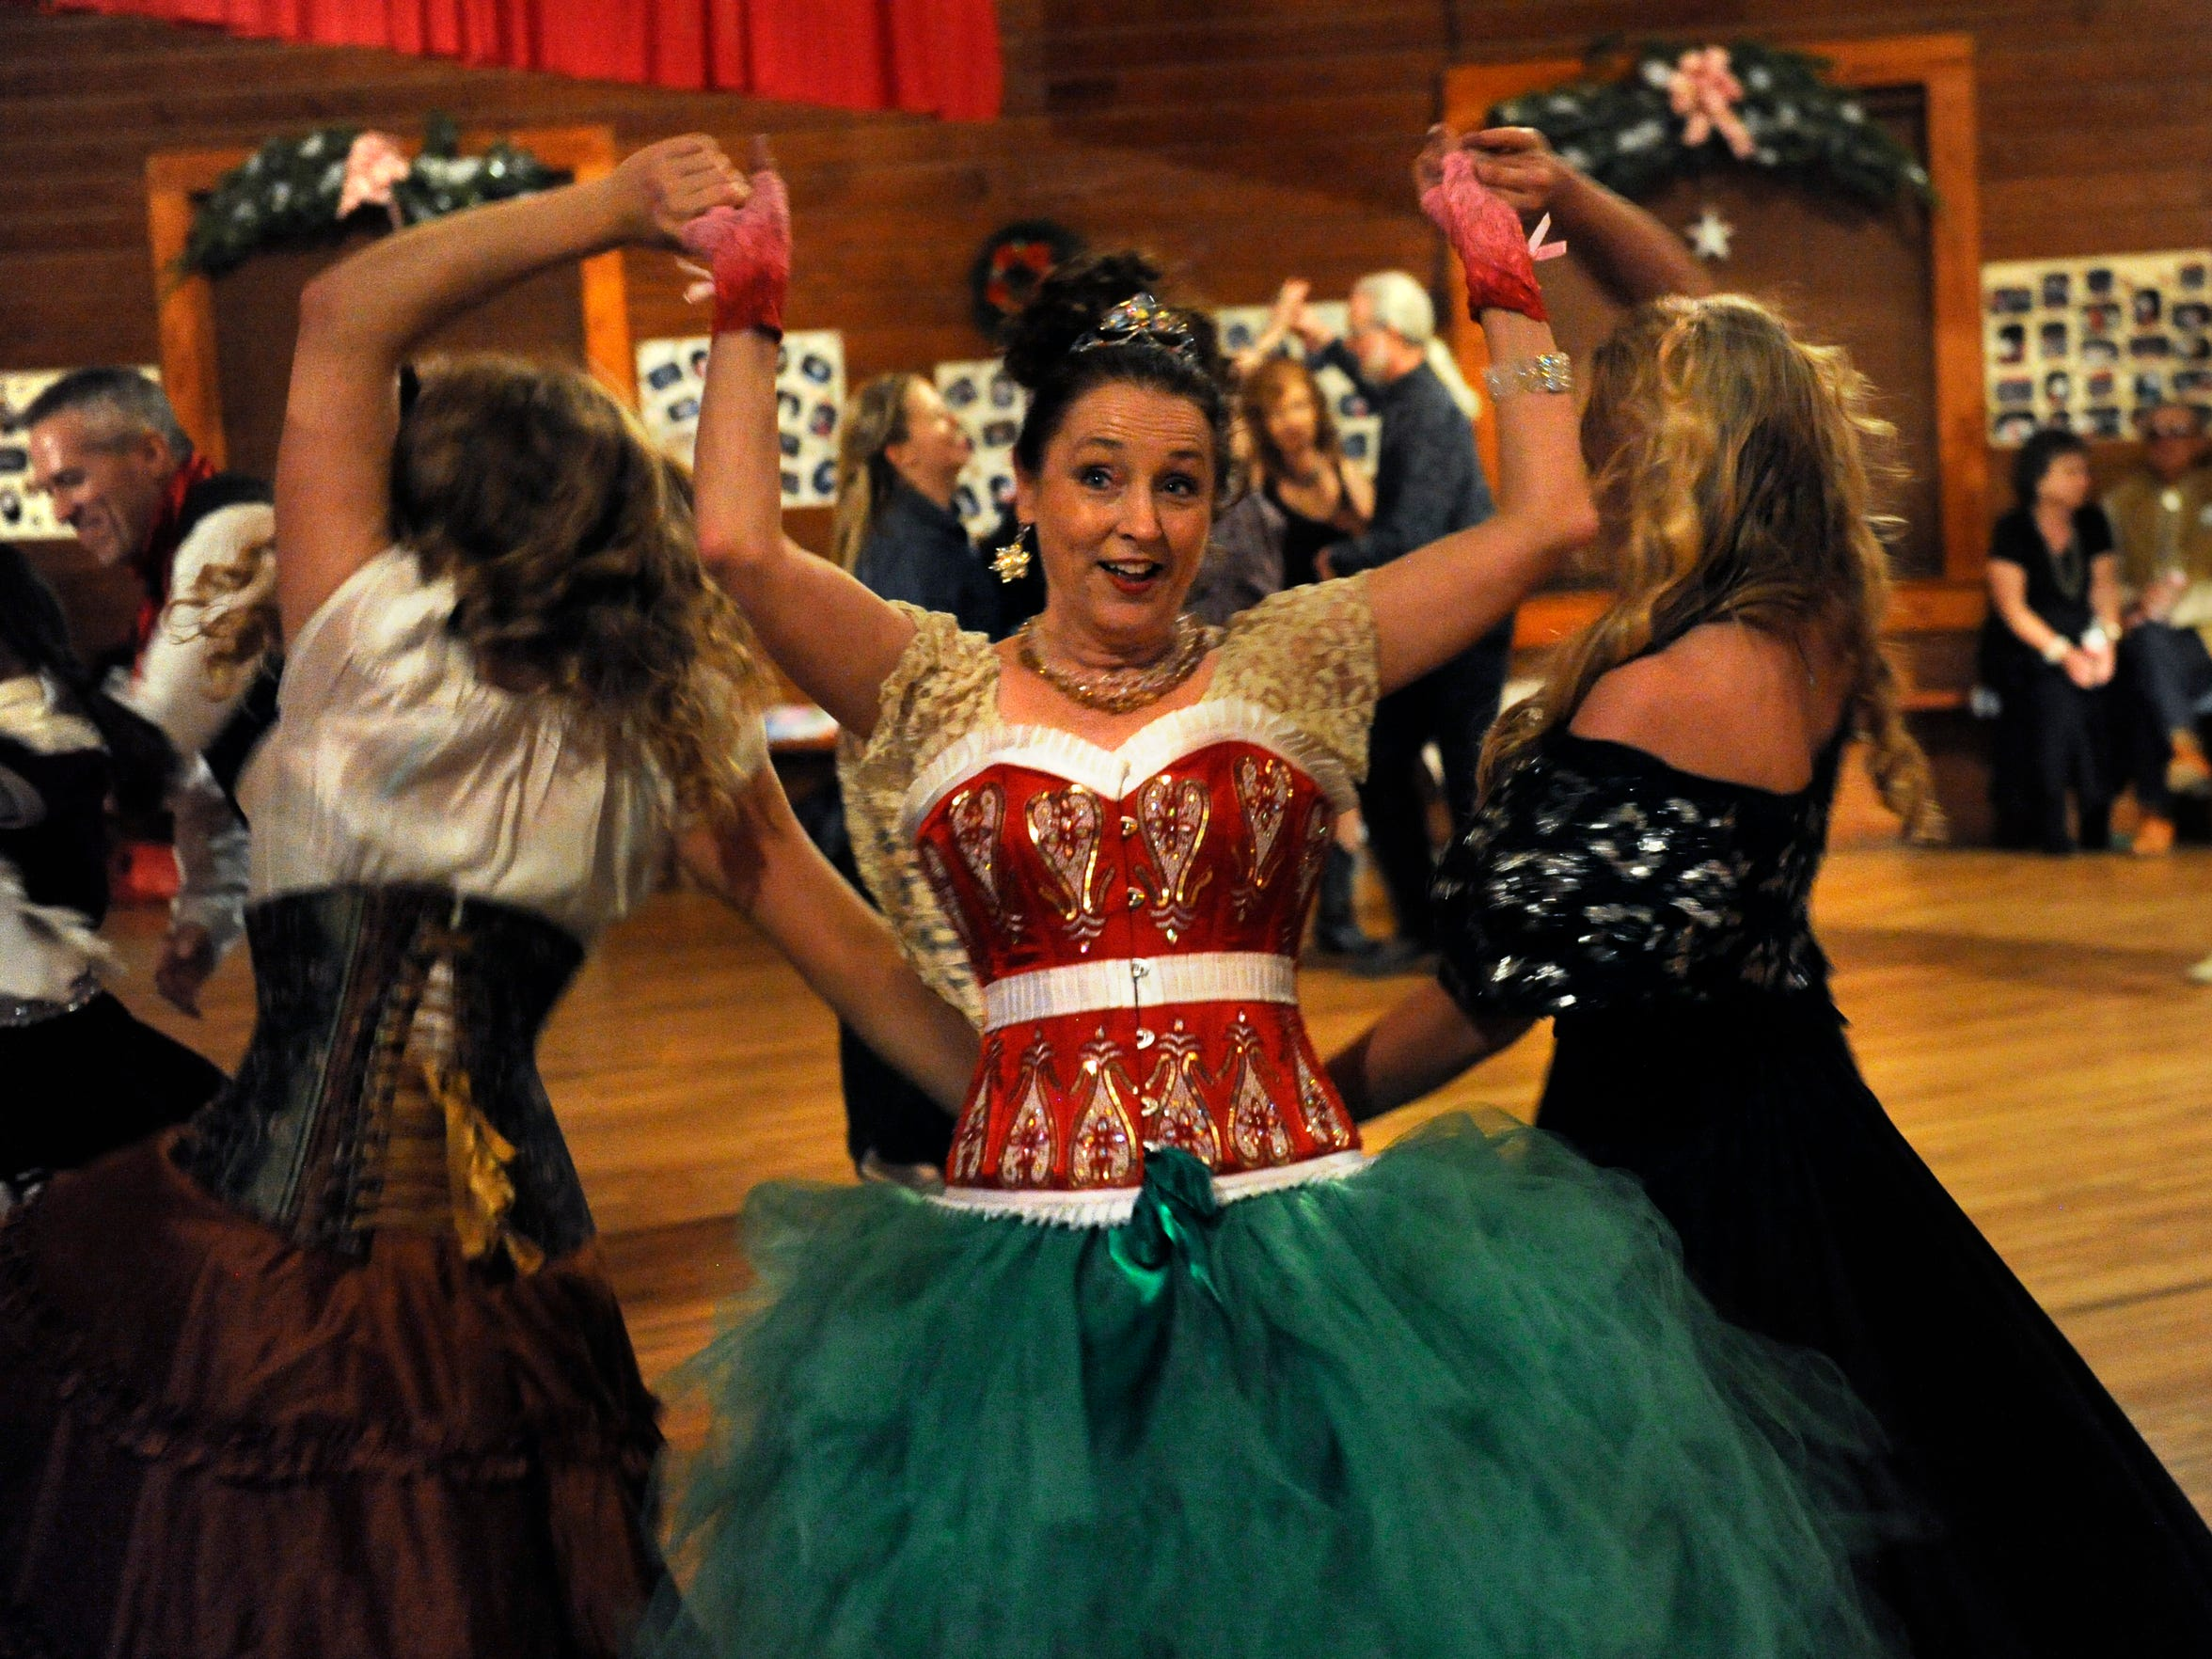 Devon Dawson holds the hands of Kristyn Harris (left) and Mikki Daniel as the three friends dance at the 2015 Texas Cowboys' Christmas Ball. Harris and Dawson performed for the crowd before Michael Martin Murphey's main act at the 130th re-enactment of the dance.